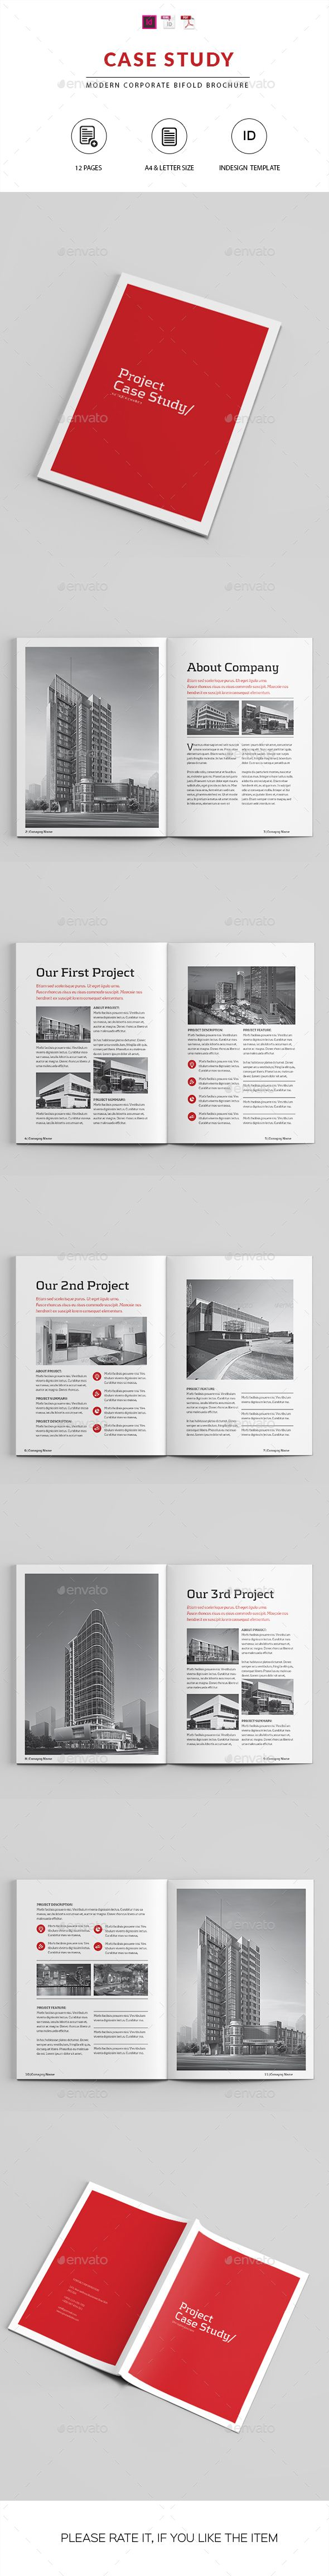 Case Study Booklet | Indesign Template | Indesign templates, Booklet ...